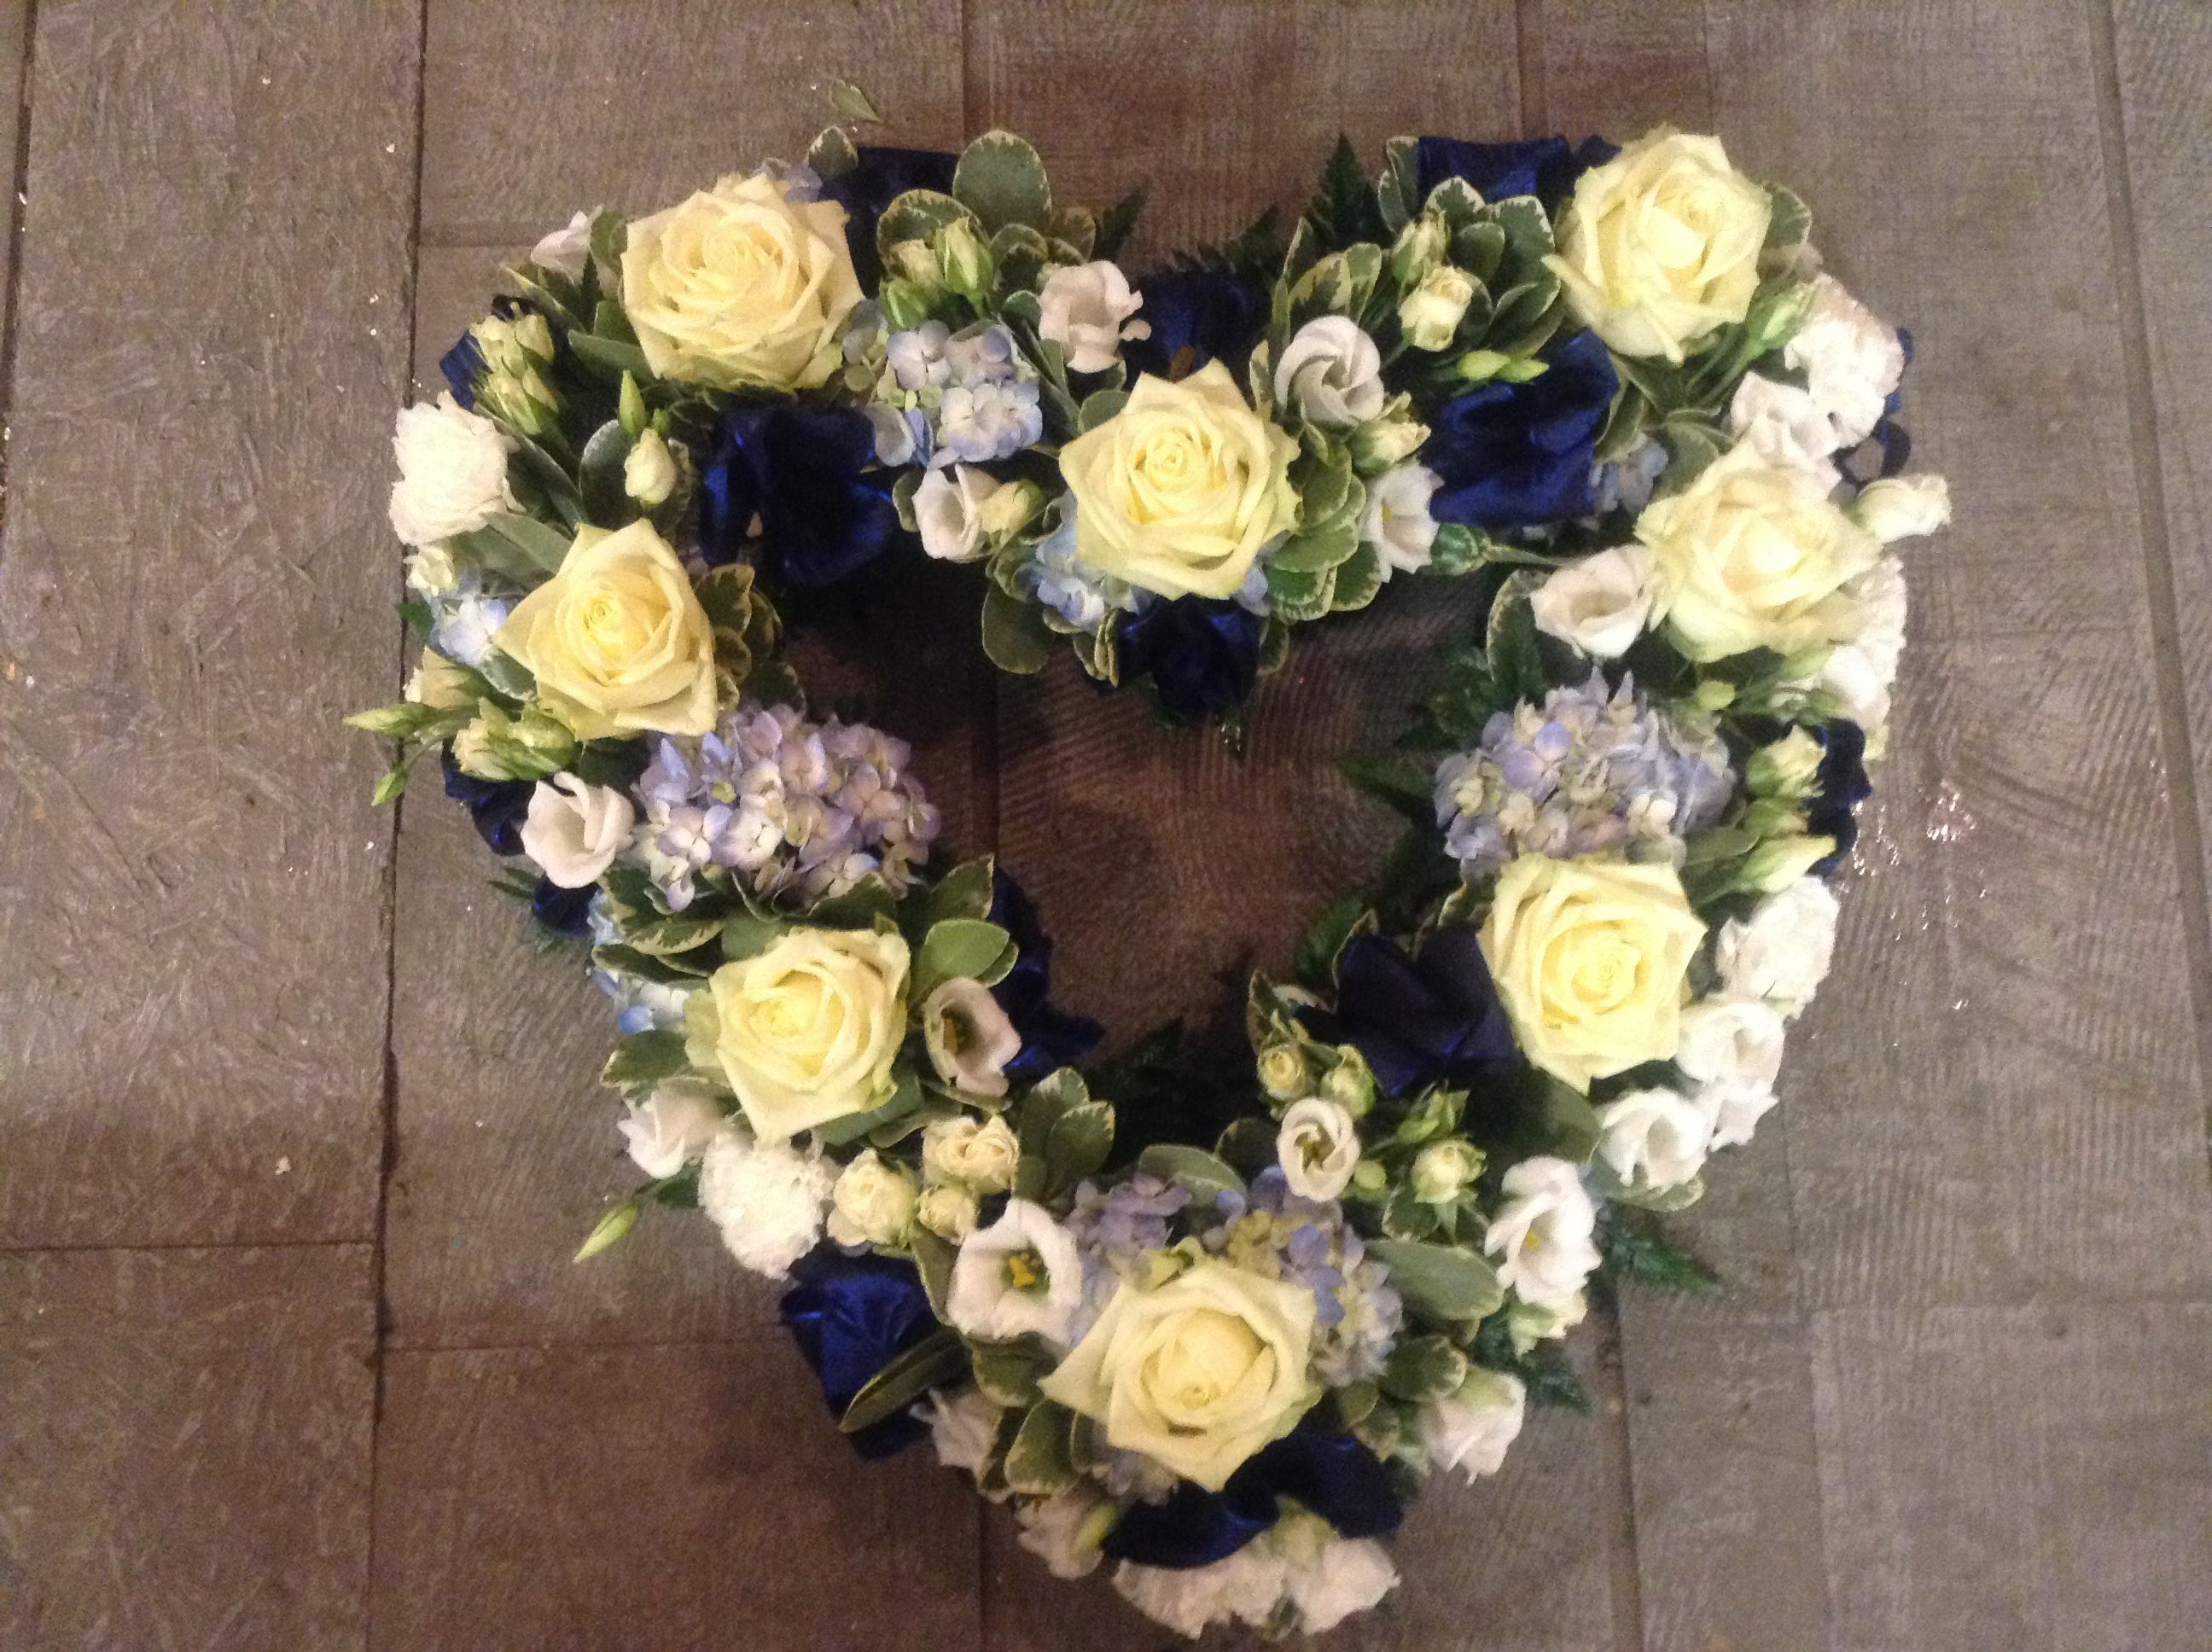 Heart of flowers pale blue hydrangea cream roses navy silk ribbon heart of flowers pale blue hydrangea cream roses navy silk ribbon izmirmasajfo Images